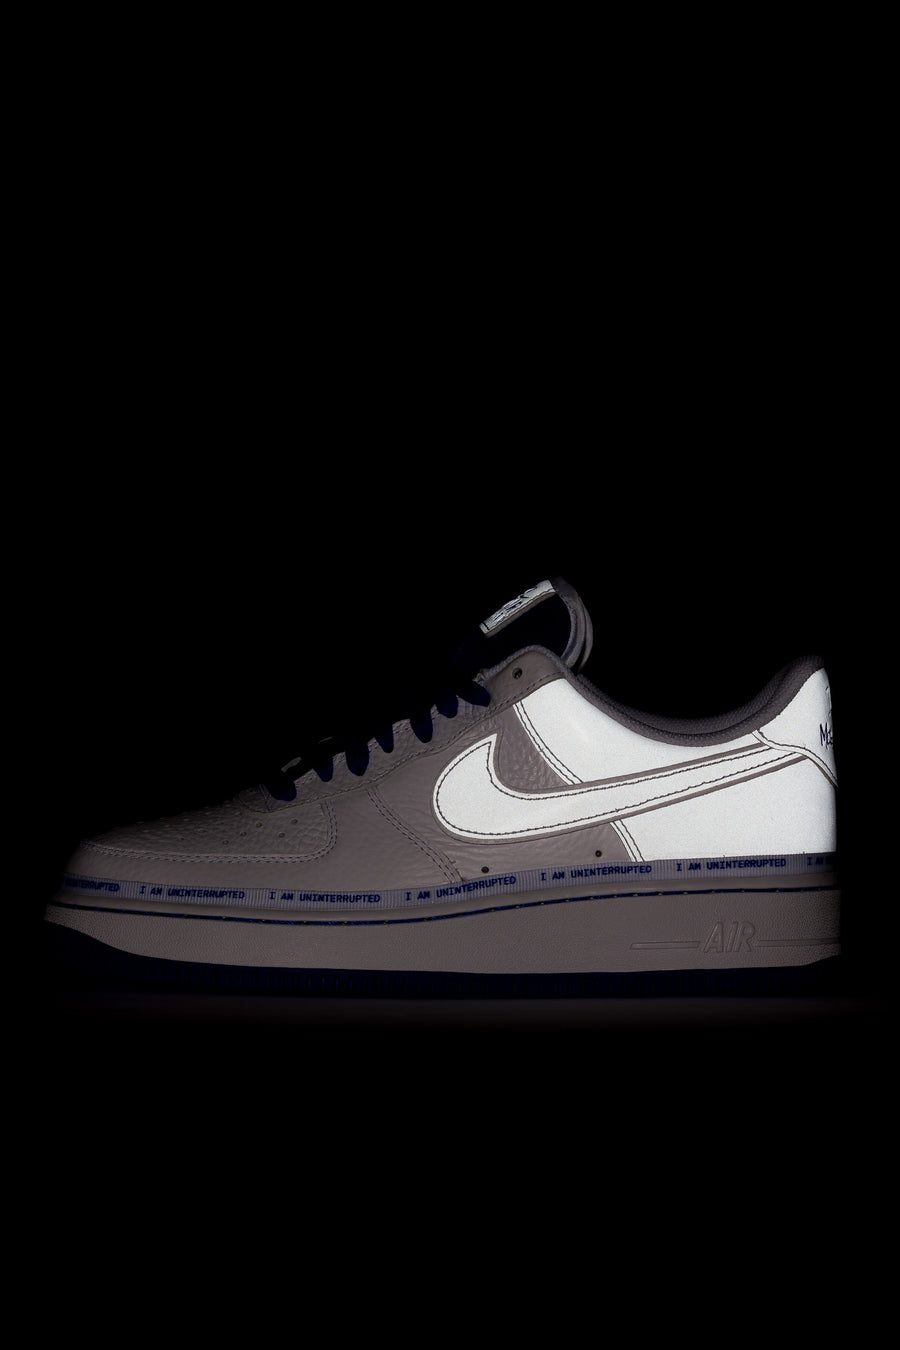 Nike Air Force 1 07 MTAA in White/Black/Blue - Notre